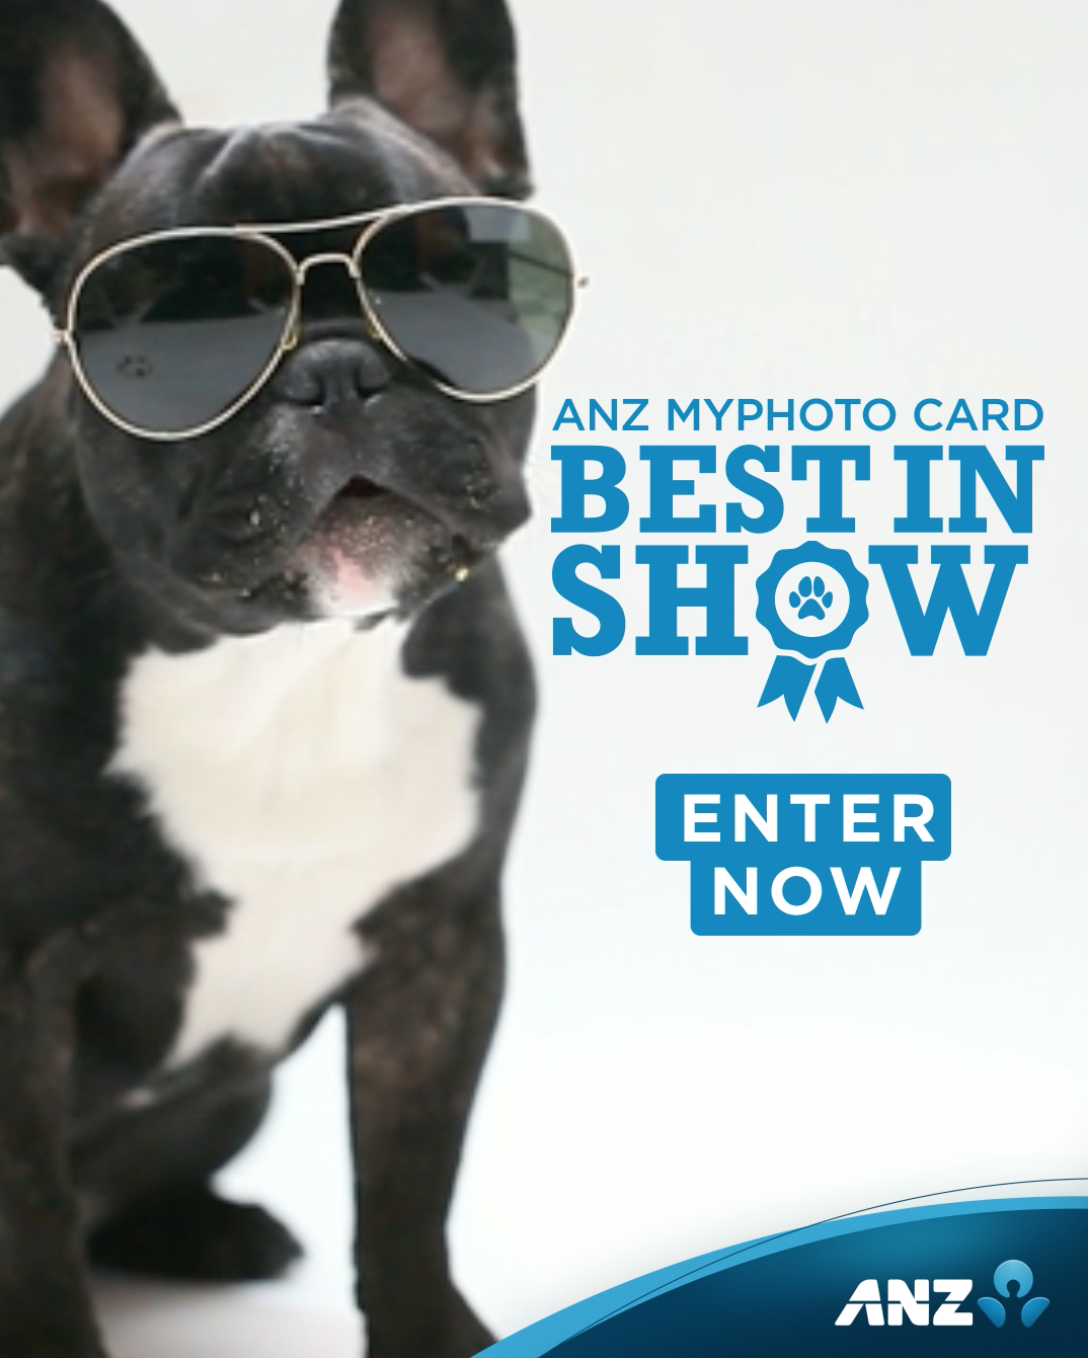 ANZ puts Kiwis' love of four-legged friends on display in newly launched campaign via TBWA NZ